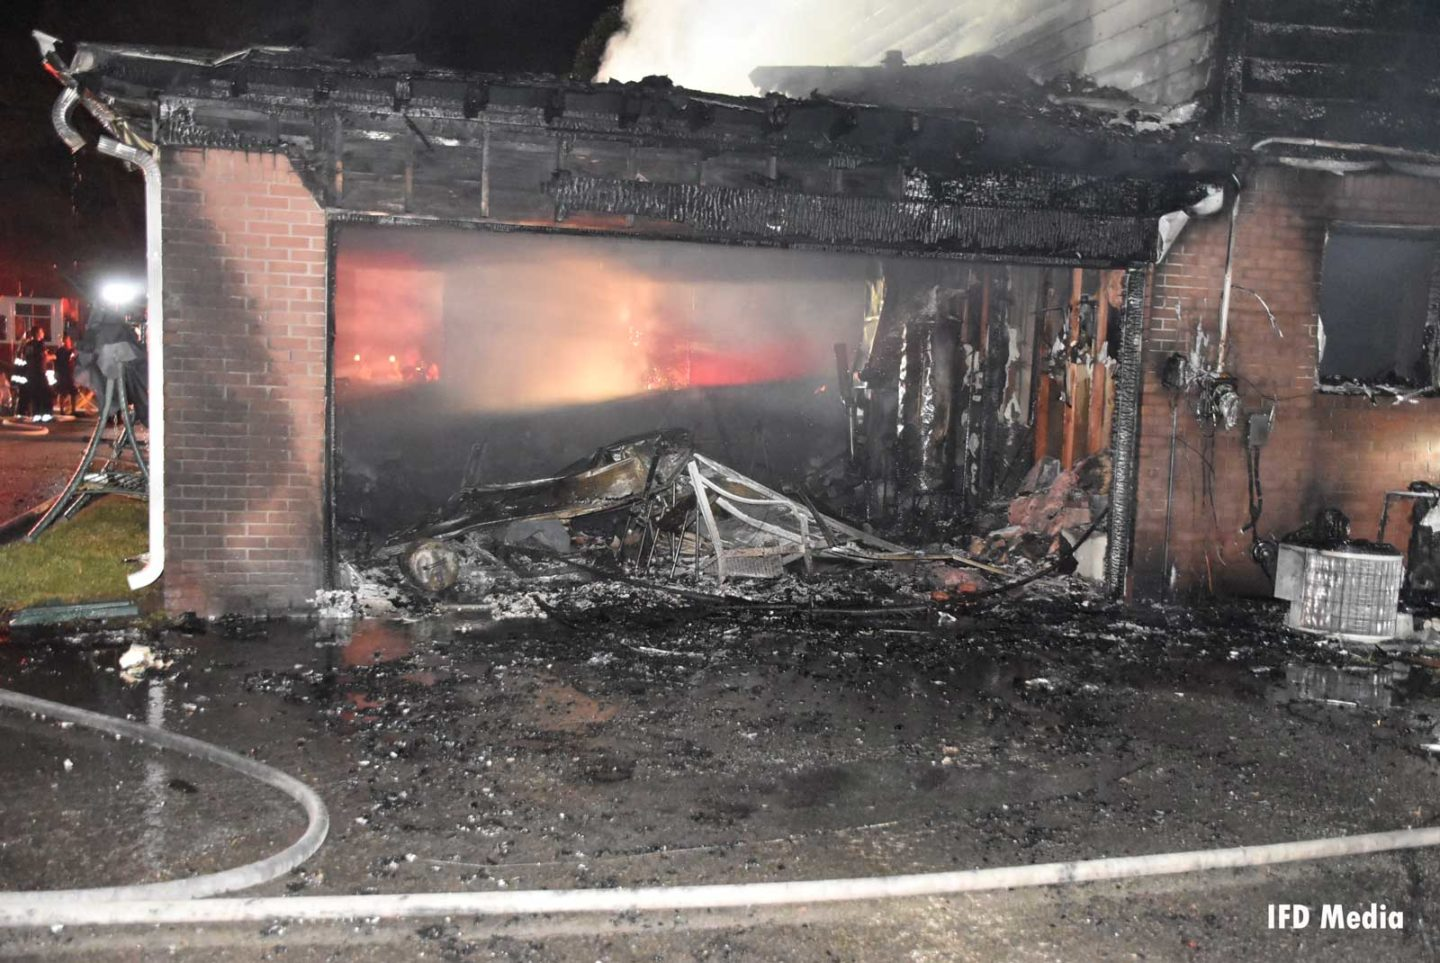 Burned out garage from fireworks fire